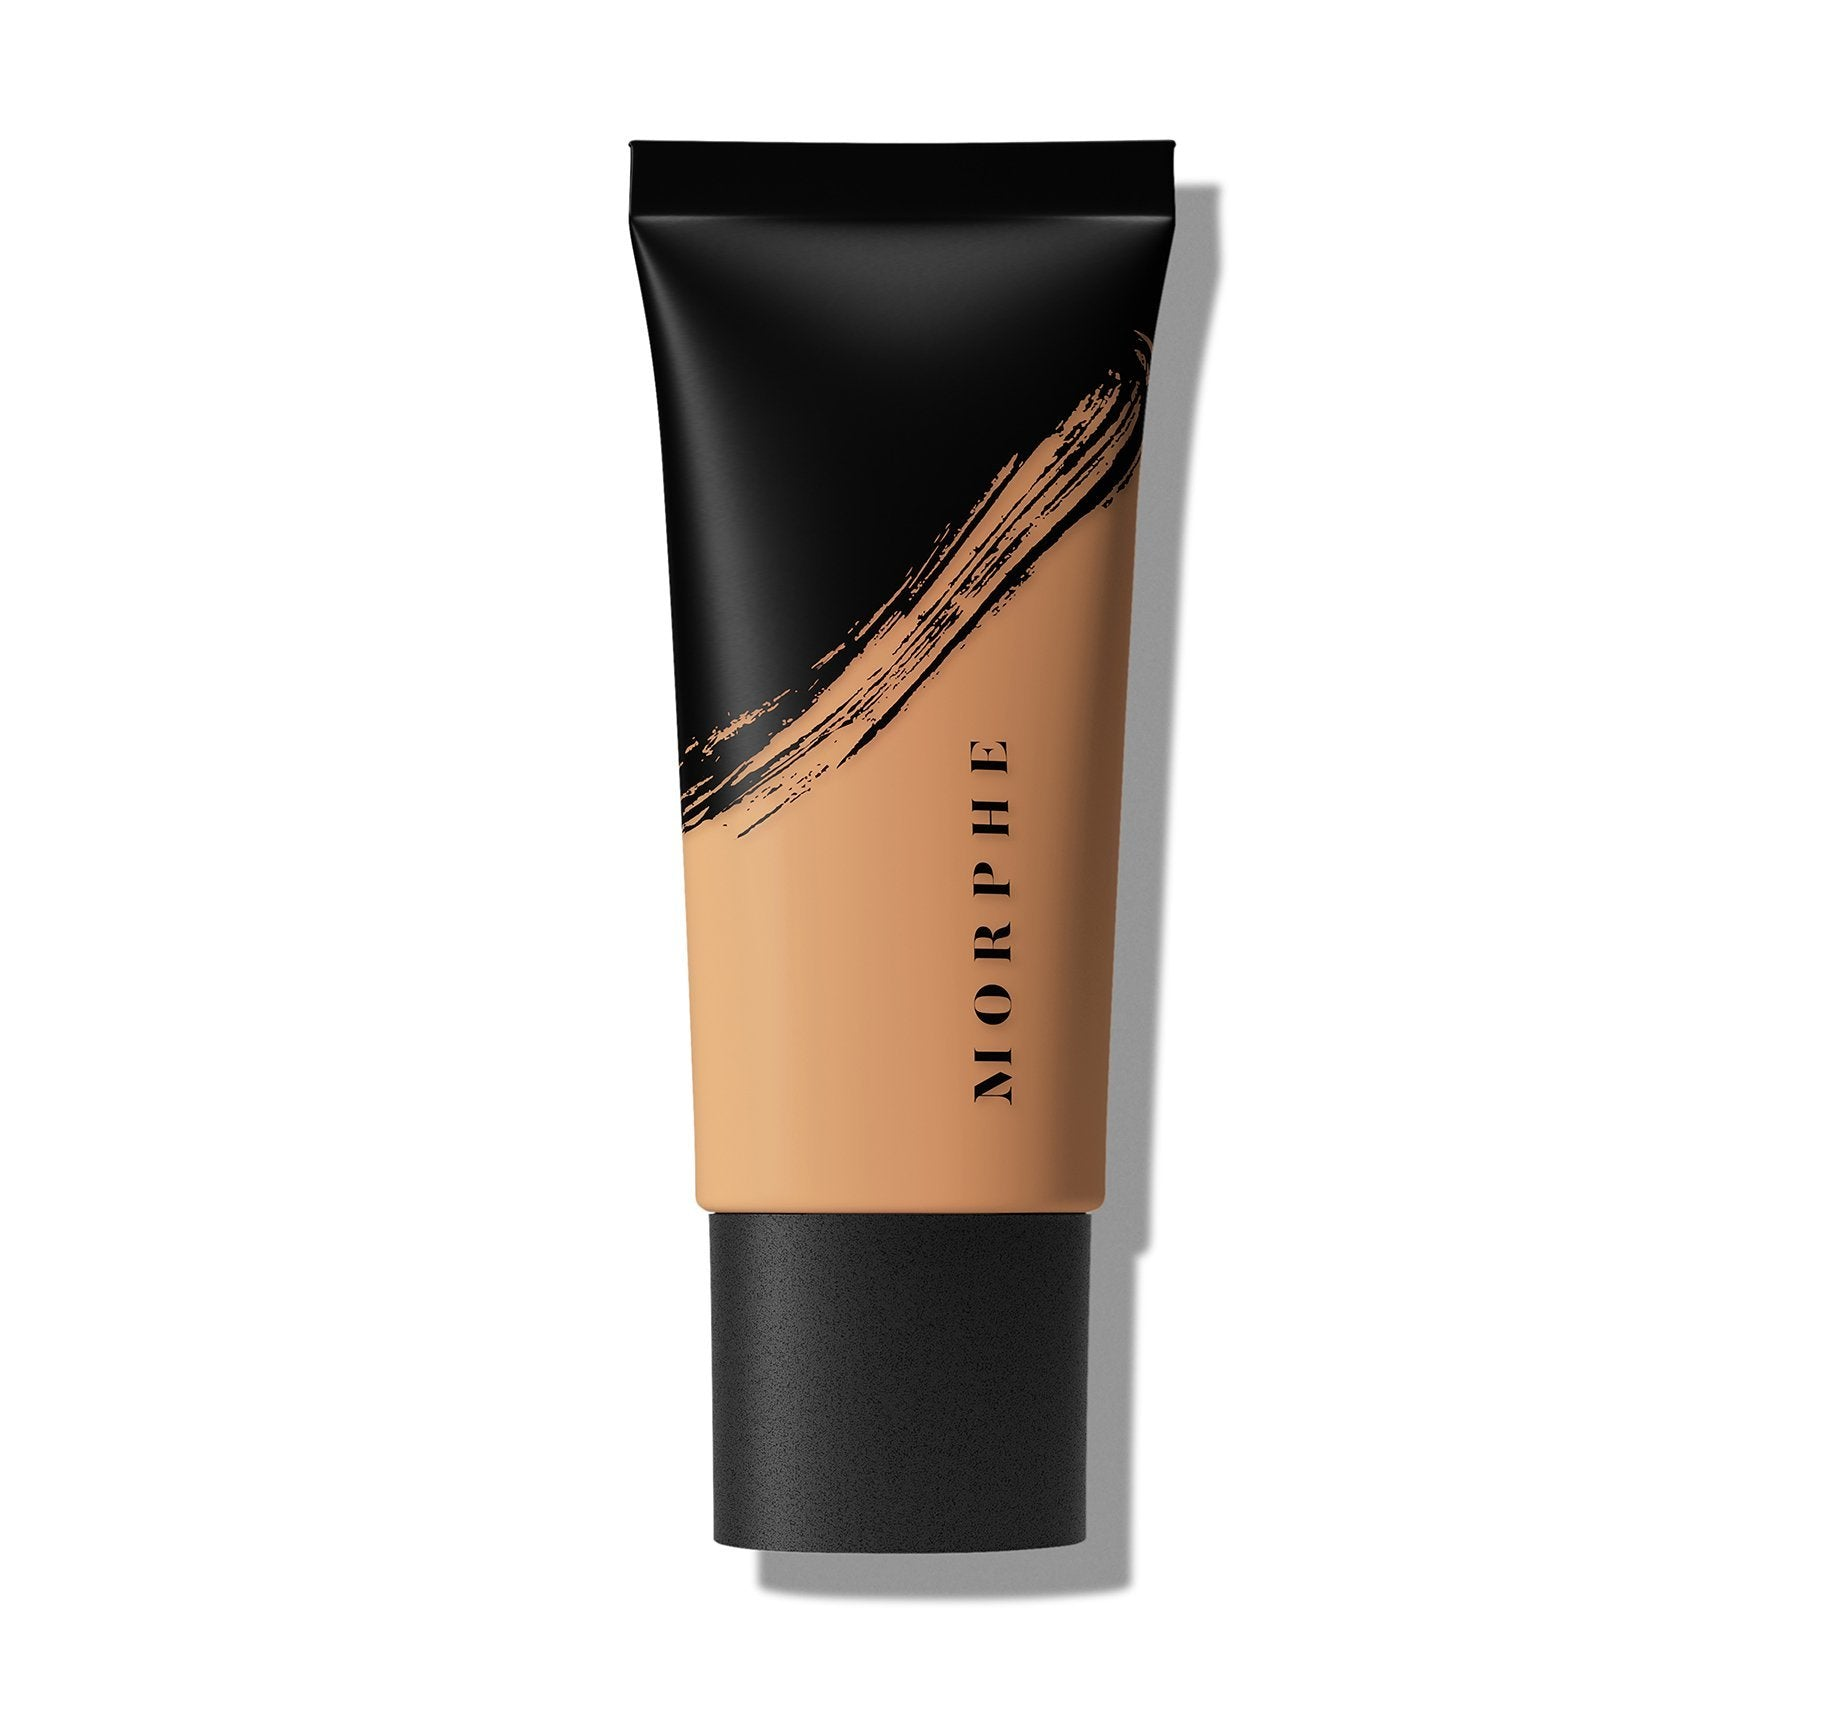 FLUIDITY FULL-COVERAGE FOUNDATION - F2.40, view larger image